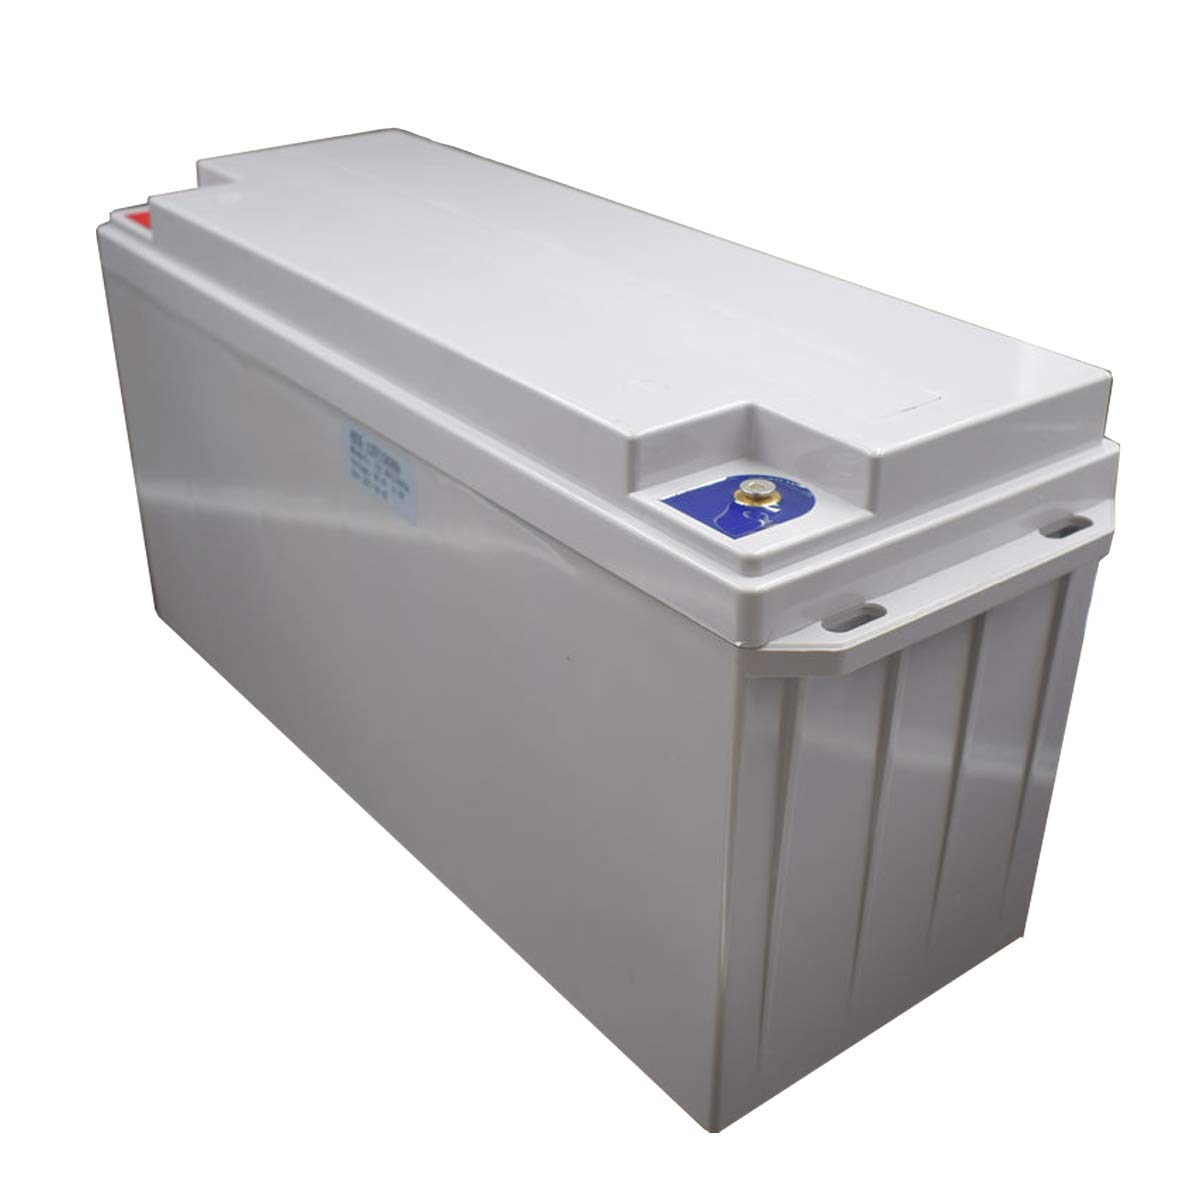 12.8V 100Ah Lifepo4 Lithium Iron Phosphate LFP Battery Pack BMS in for RV EV, Car, Yacht Party, Electric boat, Outdoor Solar System, Water motor Energy Supply, Camping, Light Small Size(White Box)